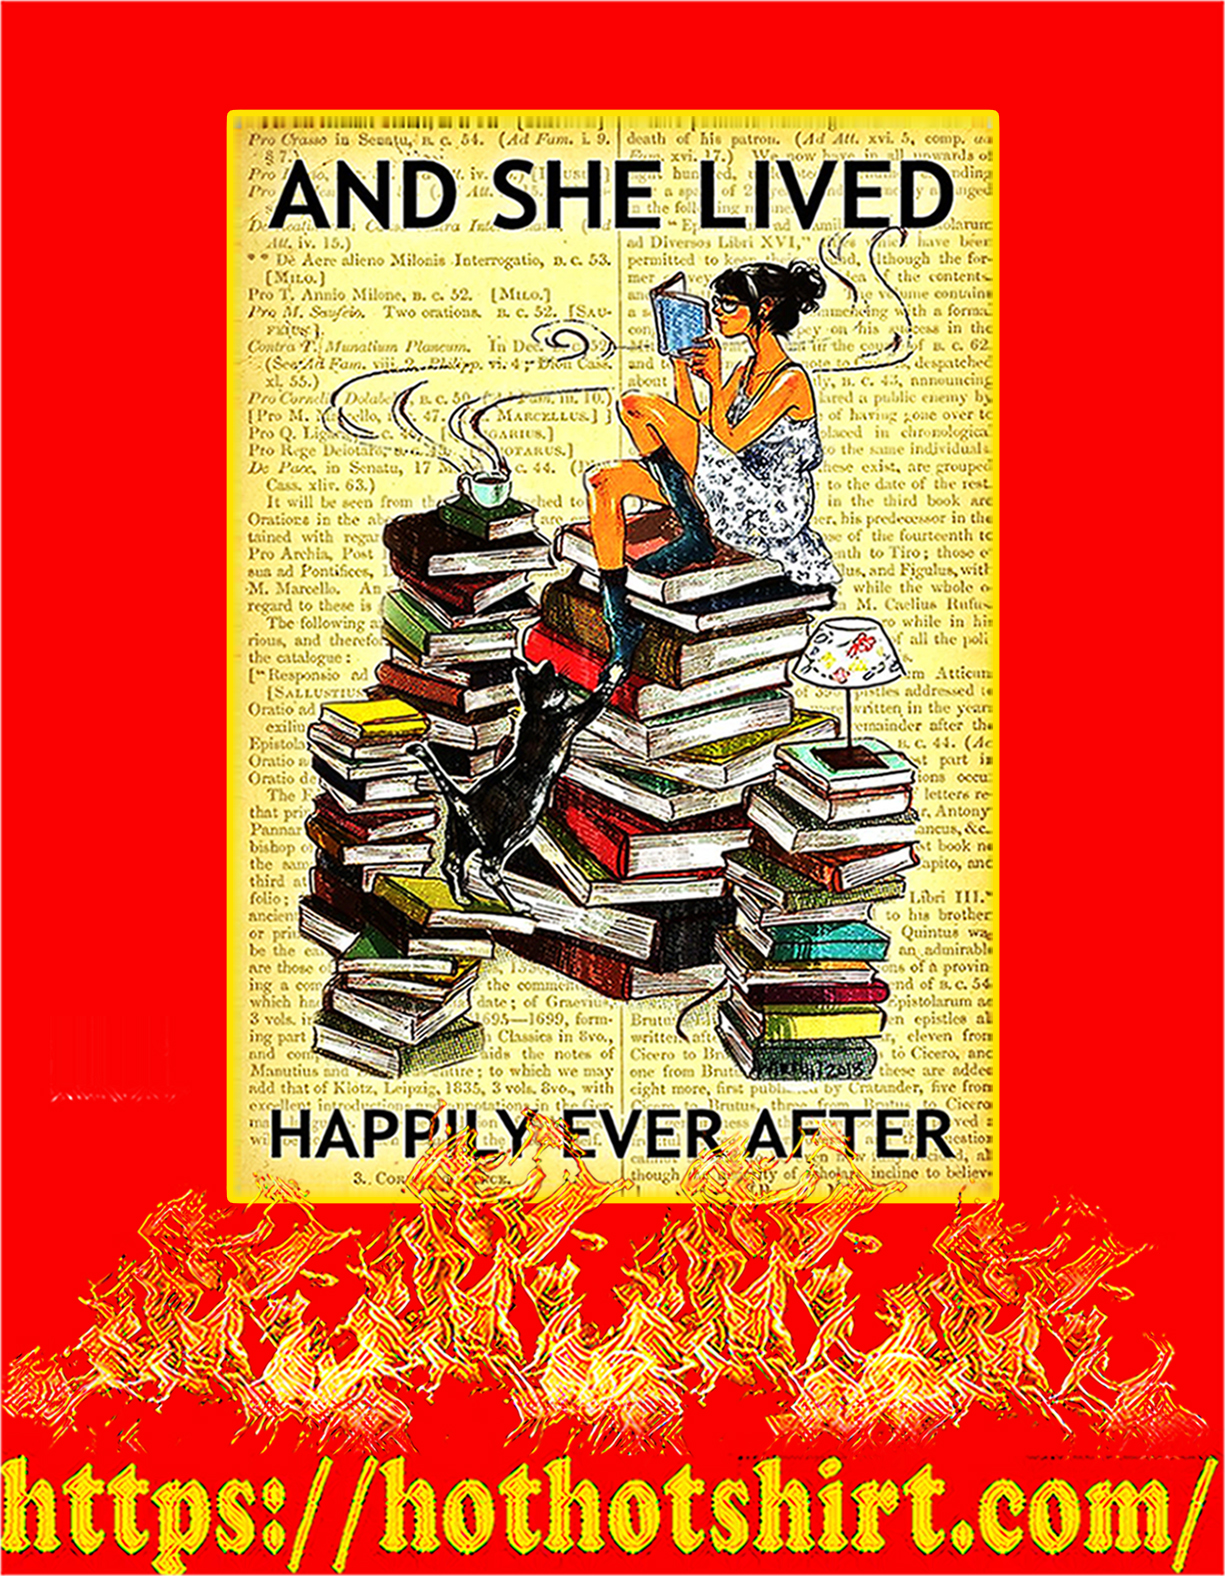 Book and cat and she lived happily ever after poster - A4